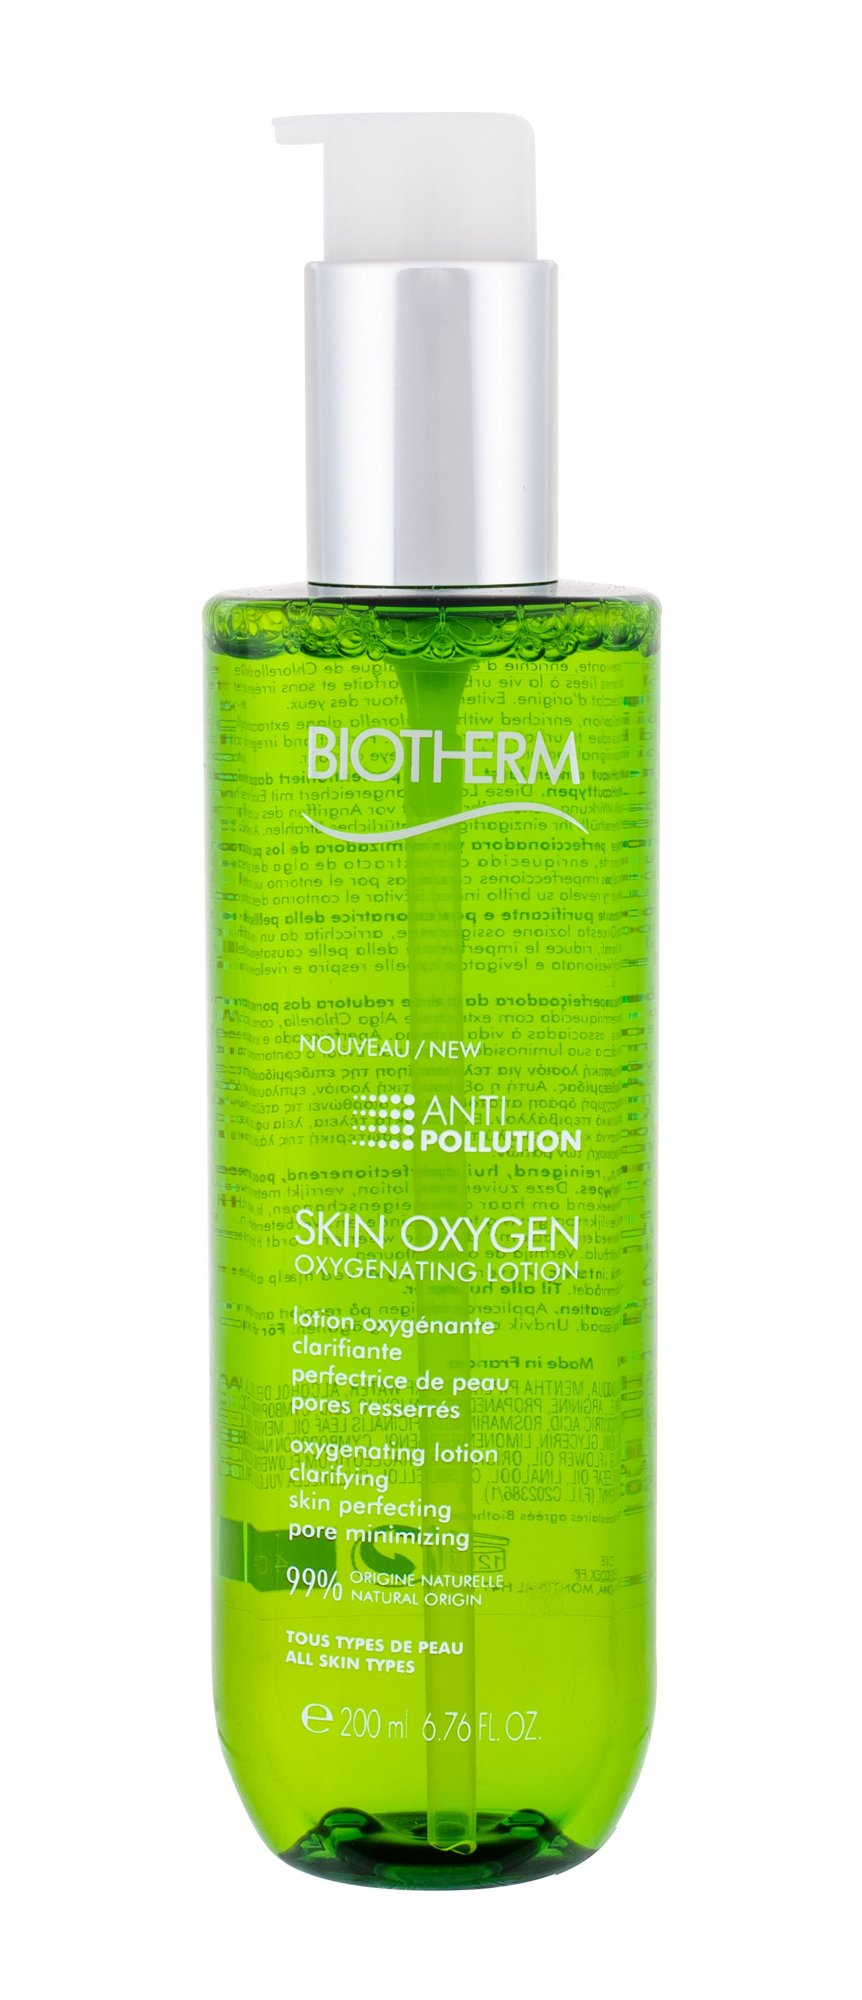 Biotherm Skin Oxygen Cleansing Water 200ml